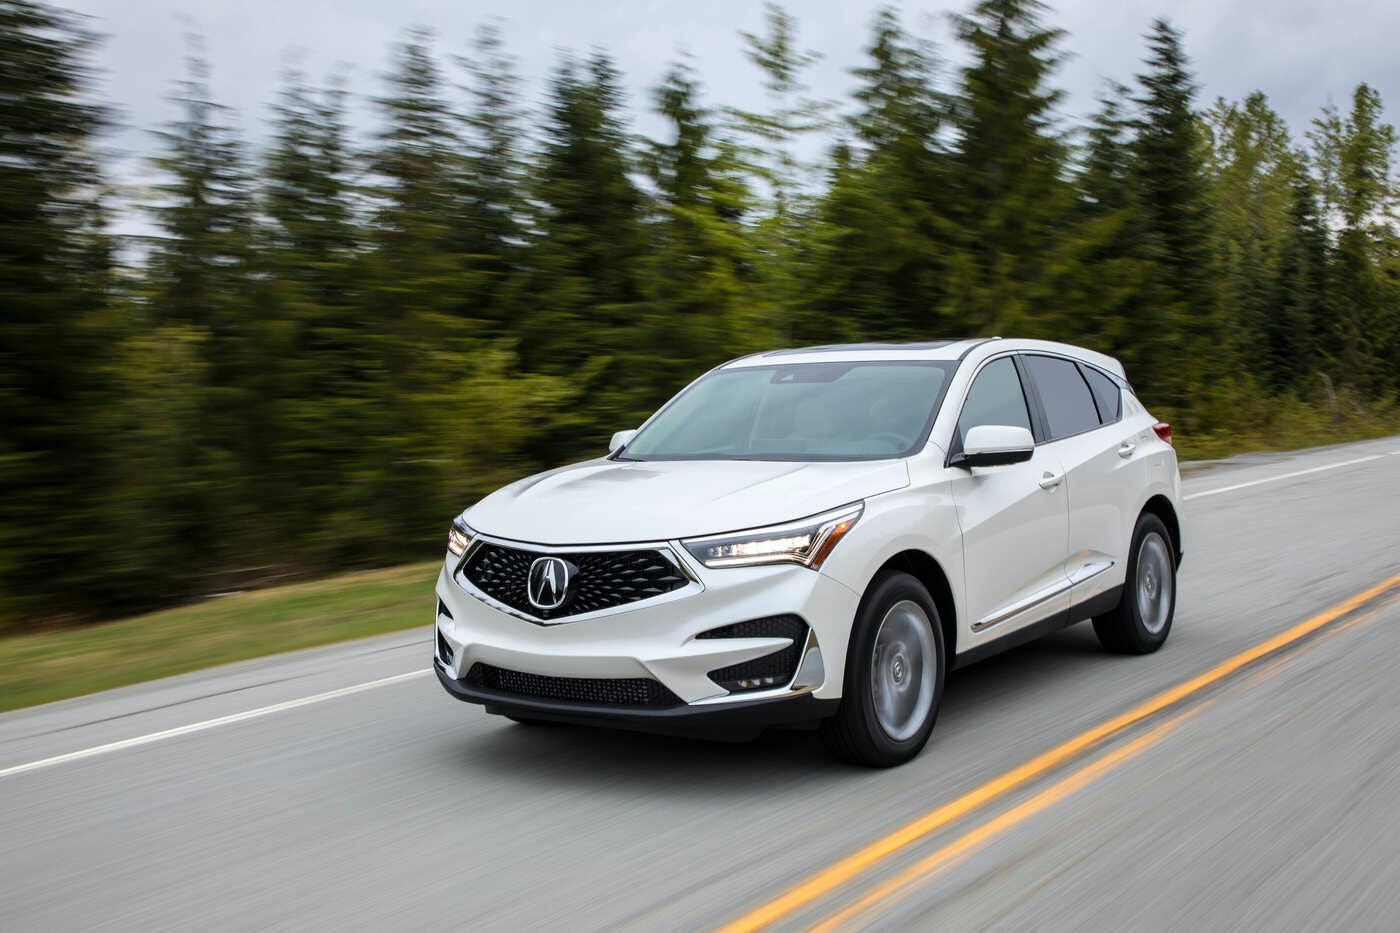 2020 Acura RDX Redesign, Price & Release Date >> 2020 Acura Rdx Comparisons Reviews Pictures Truecar